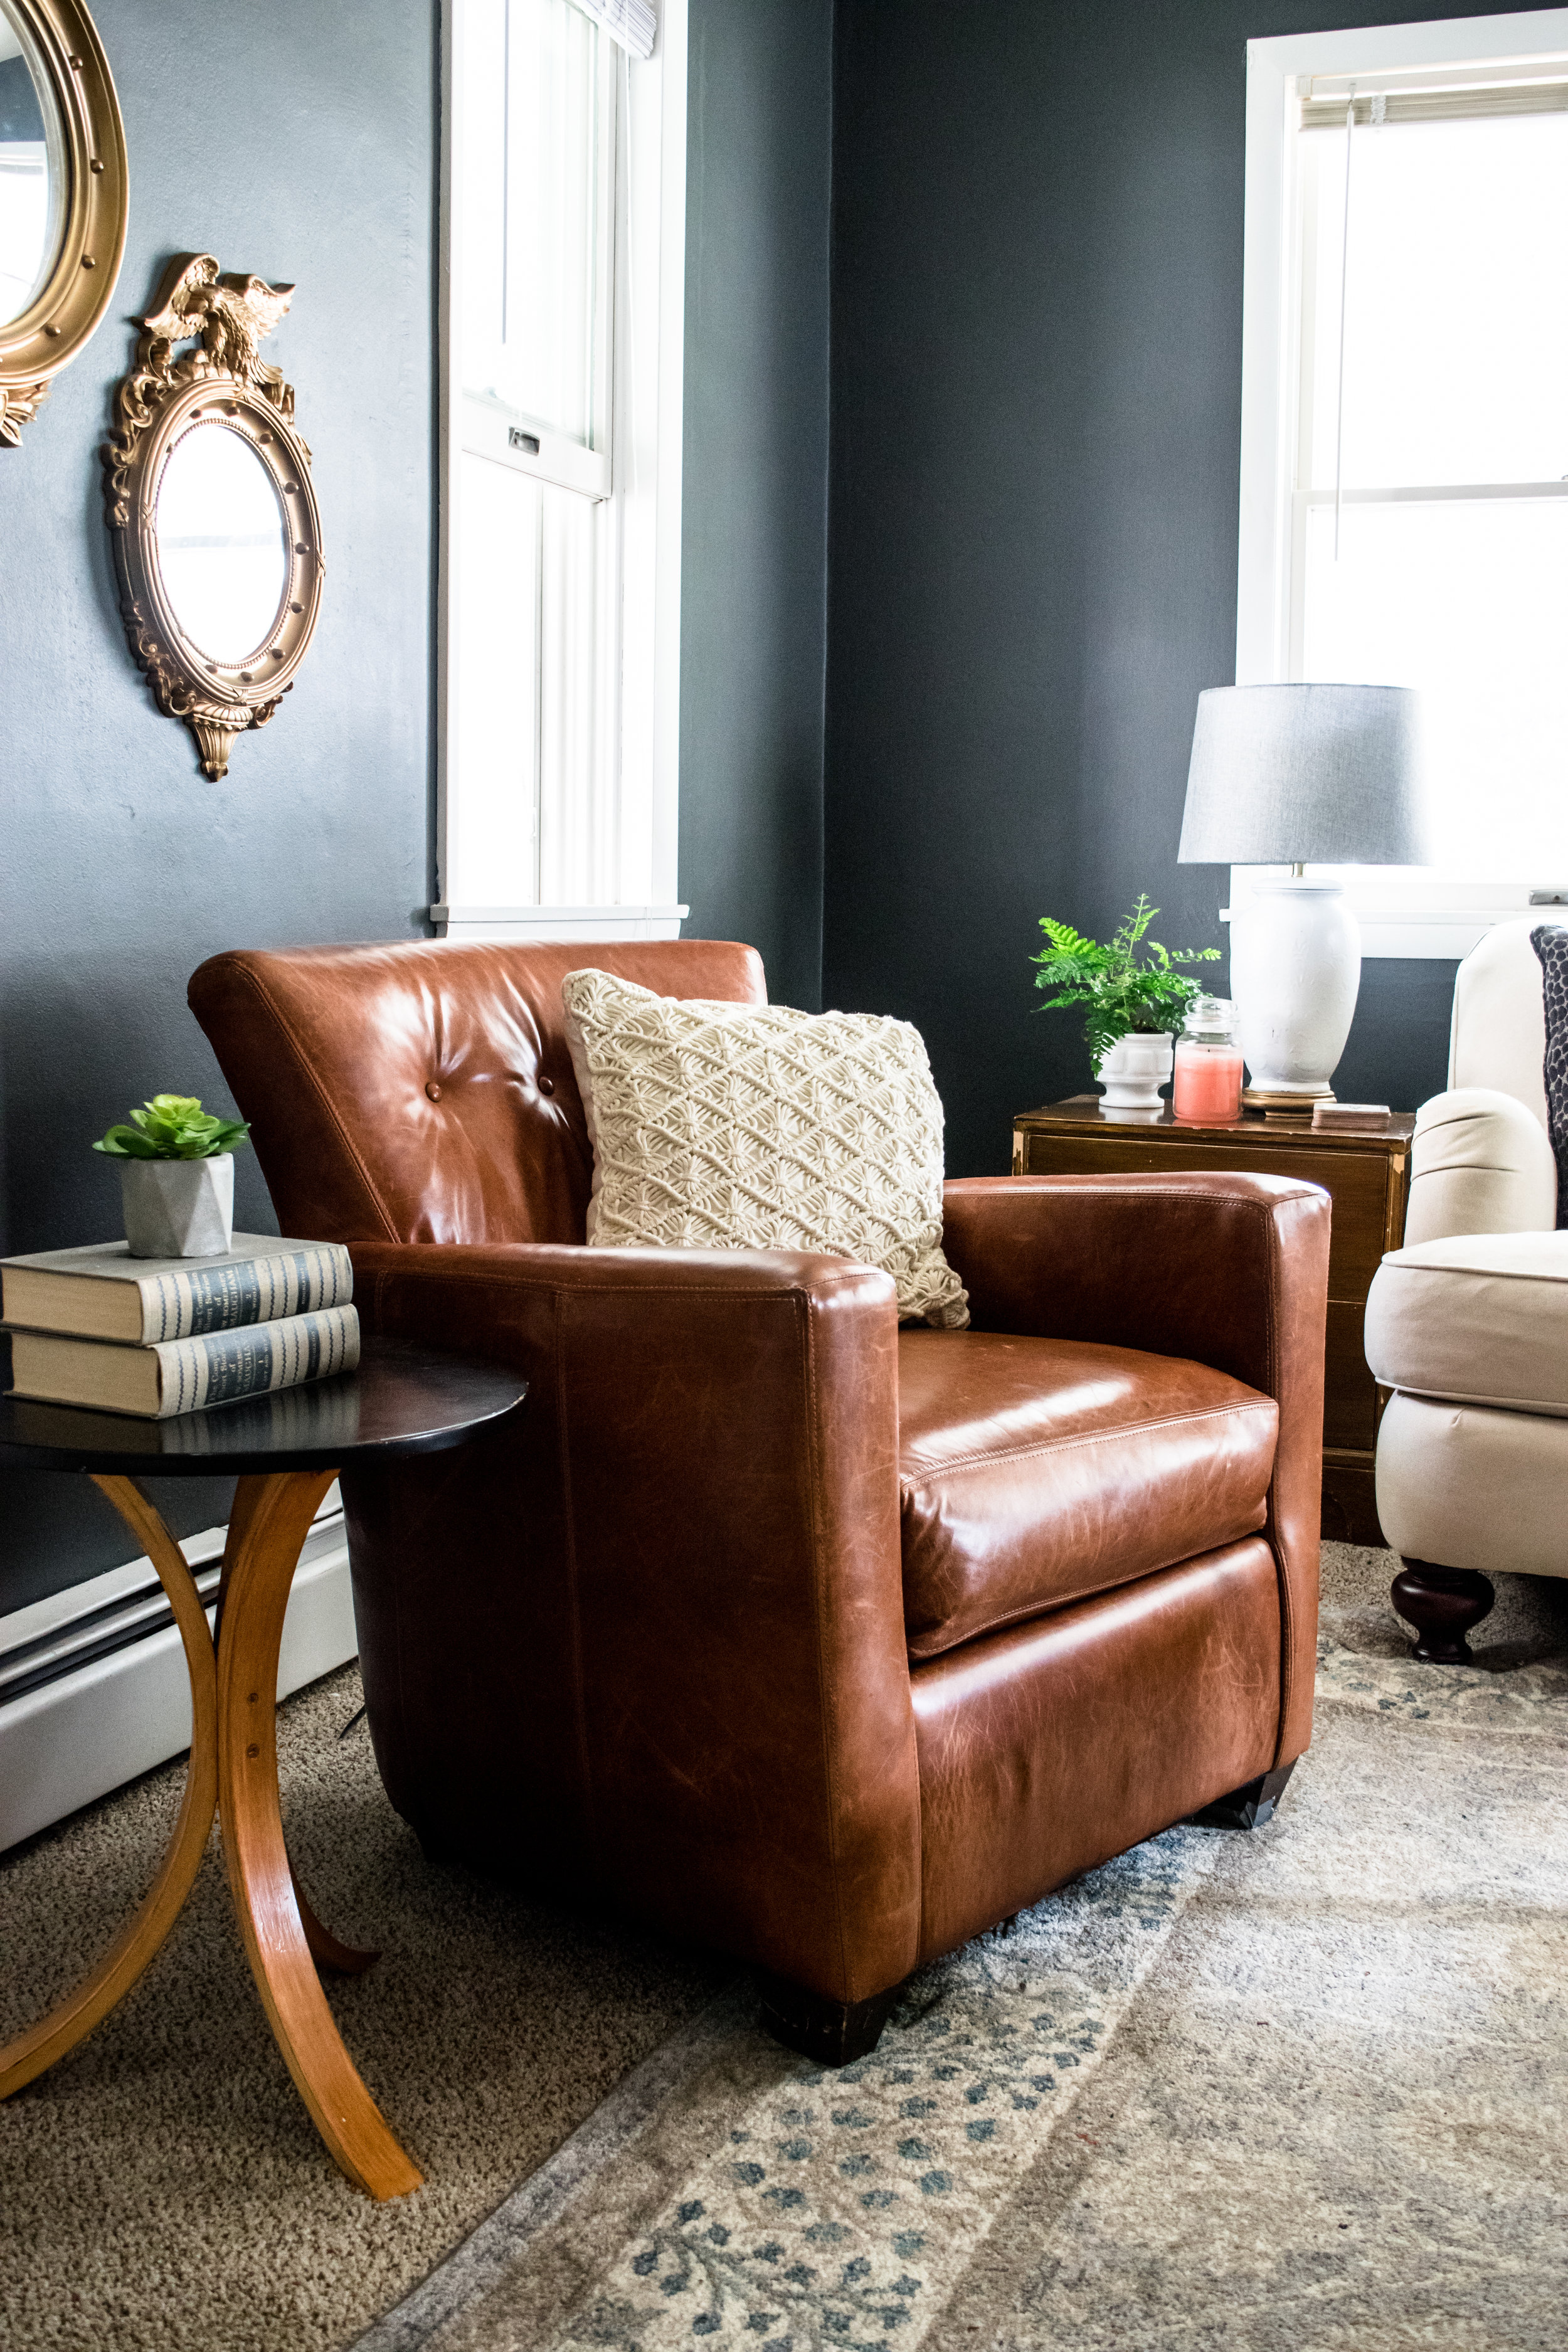 Modern traditional country living room inspiration | English arm sofa, charles of london, french wingback chairs, distressed leather midcentury modern chair, black walls living room, grey persian rug, thrift store style